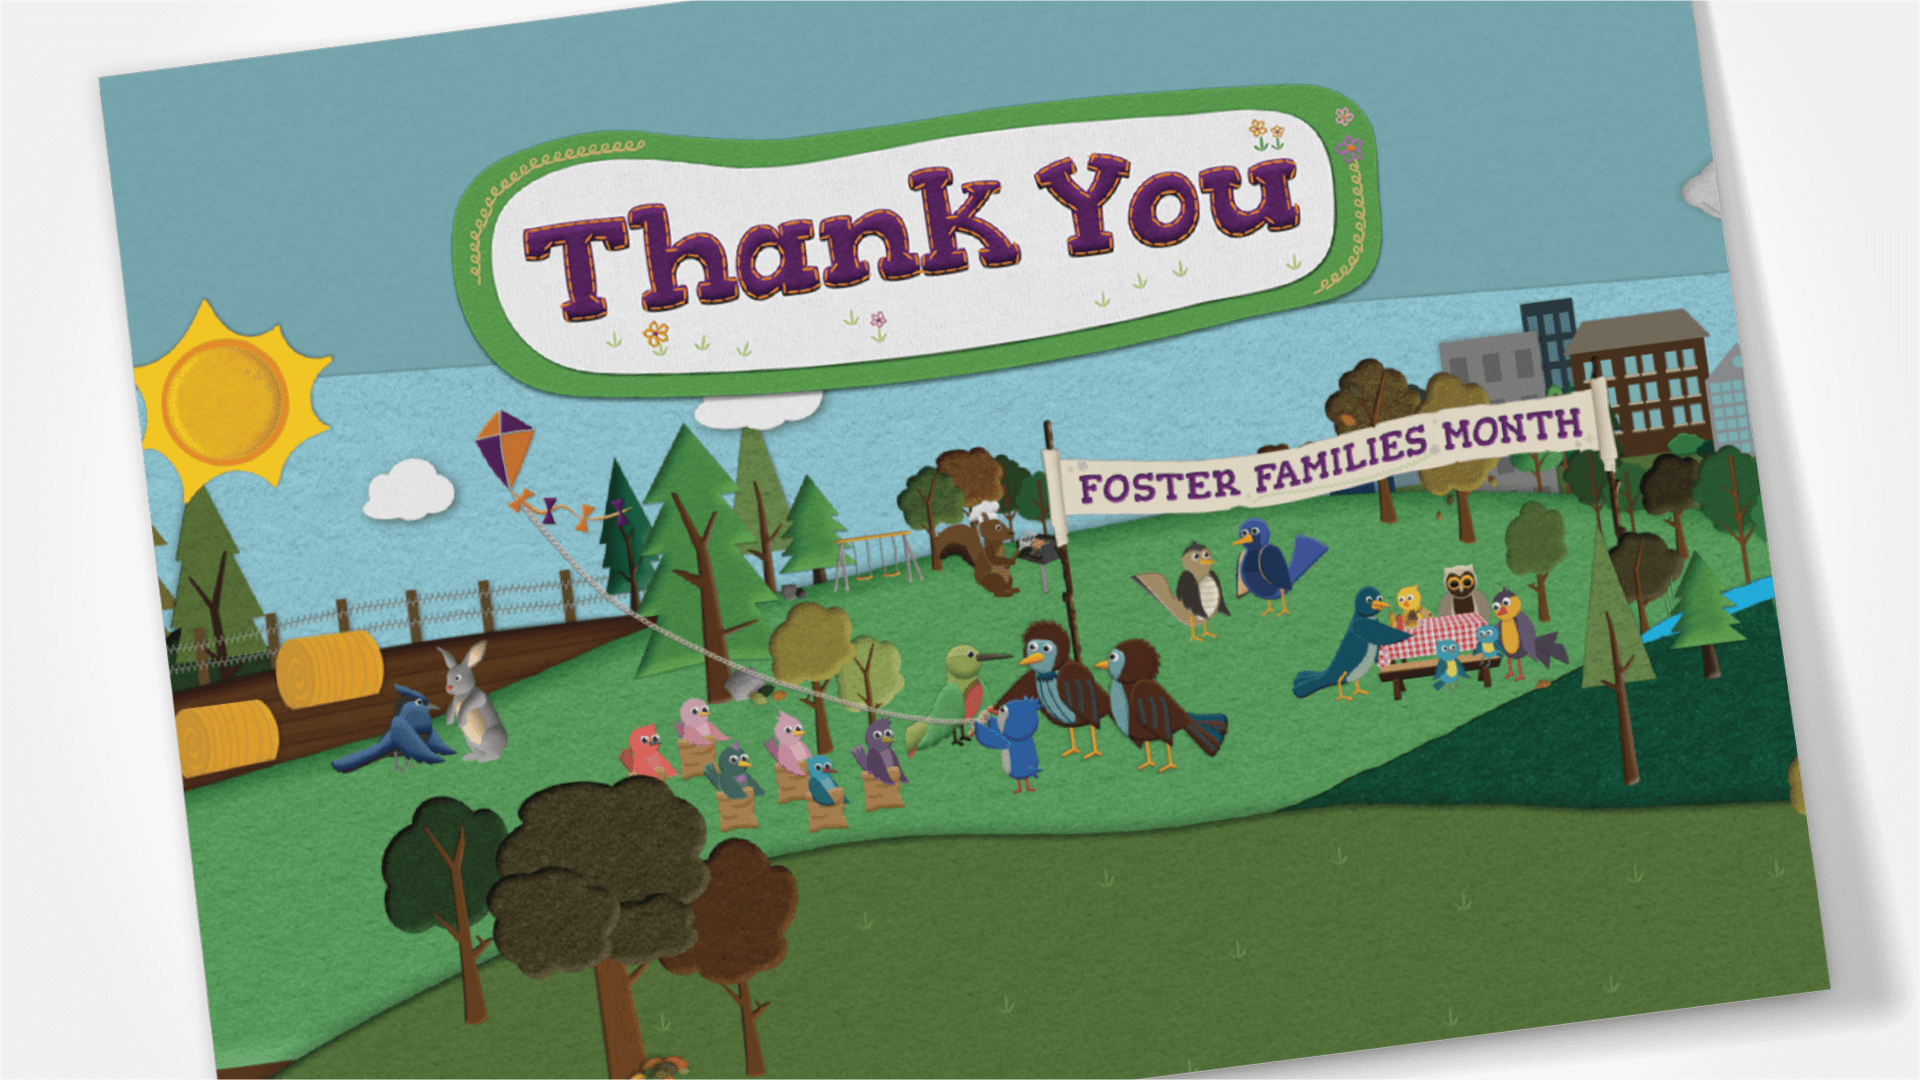 Saskatchewan Foster Families Association, Design, Foster Families Month Thank You Card, Portfolio Image